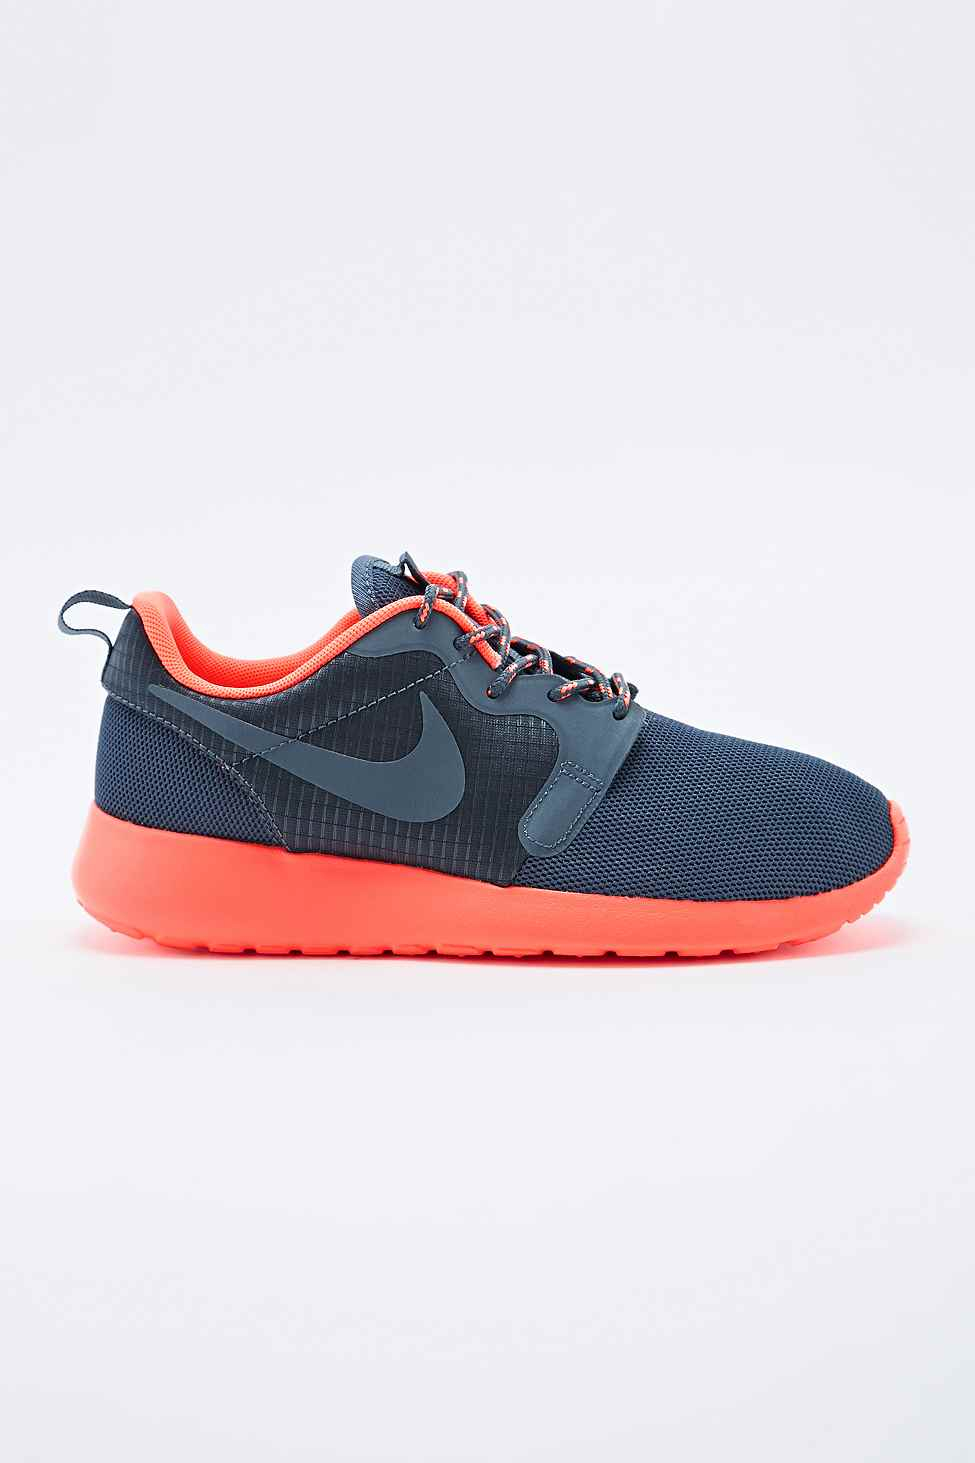 lyst nike roshe run trainers in grey and coral in gray. Black Bedroom Furniture Sets. Home Design Ideas